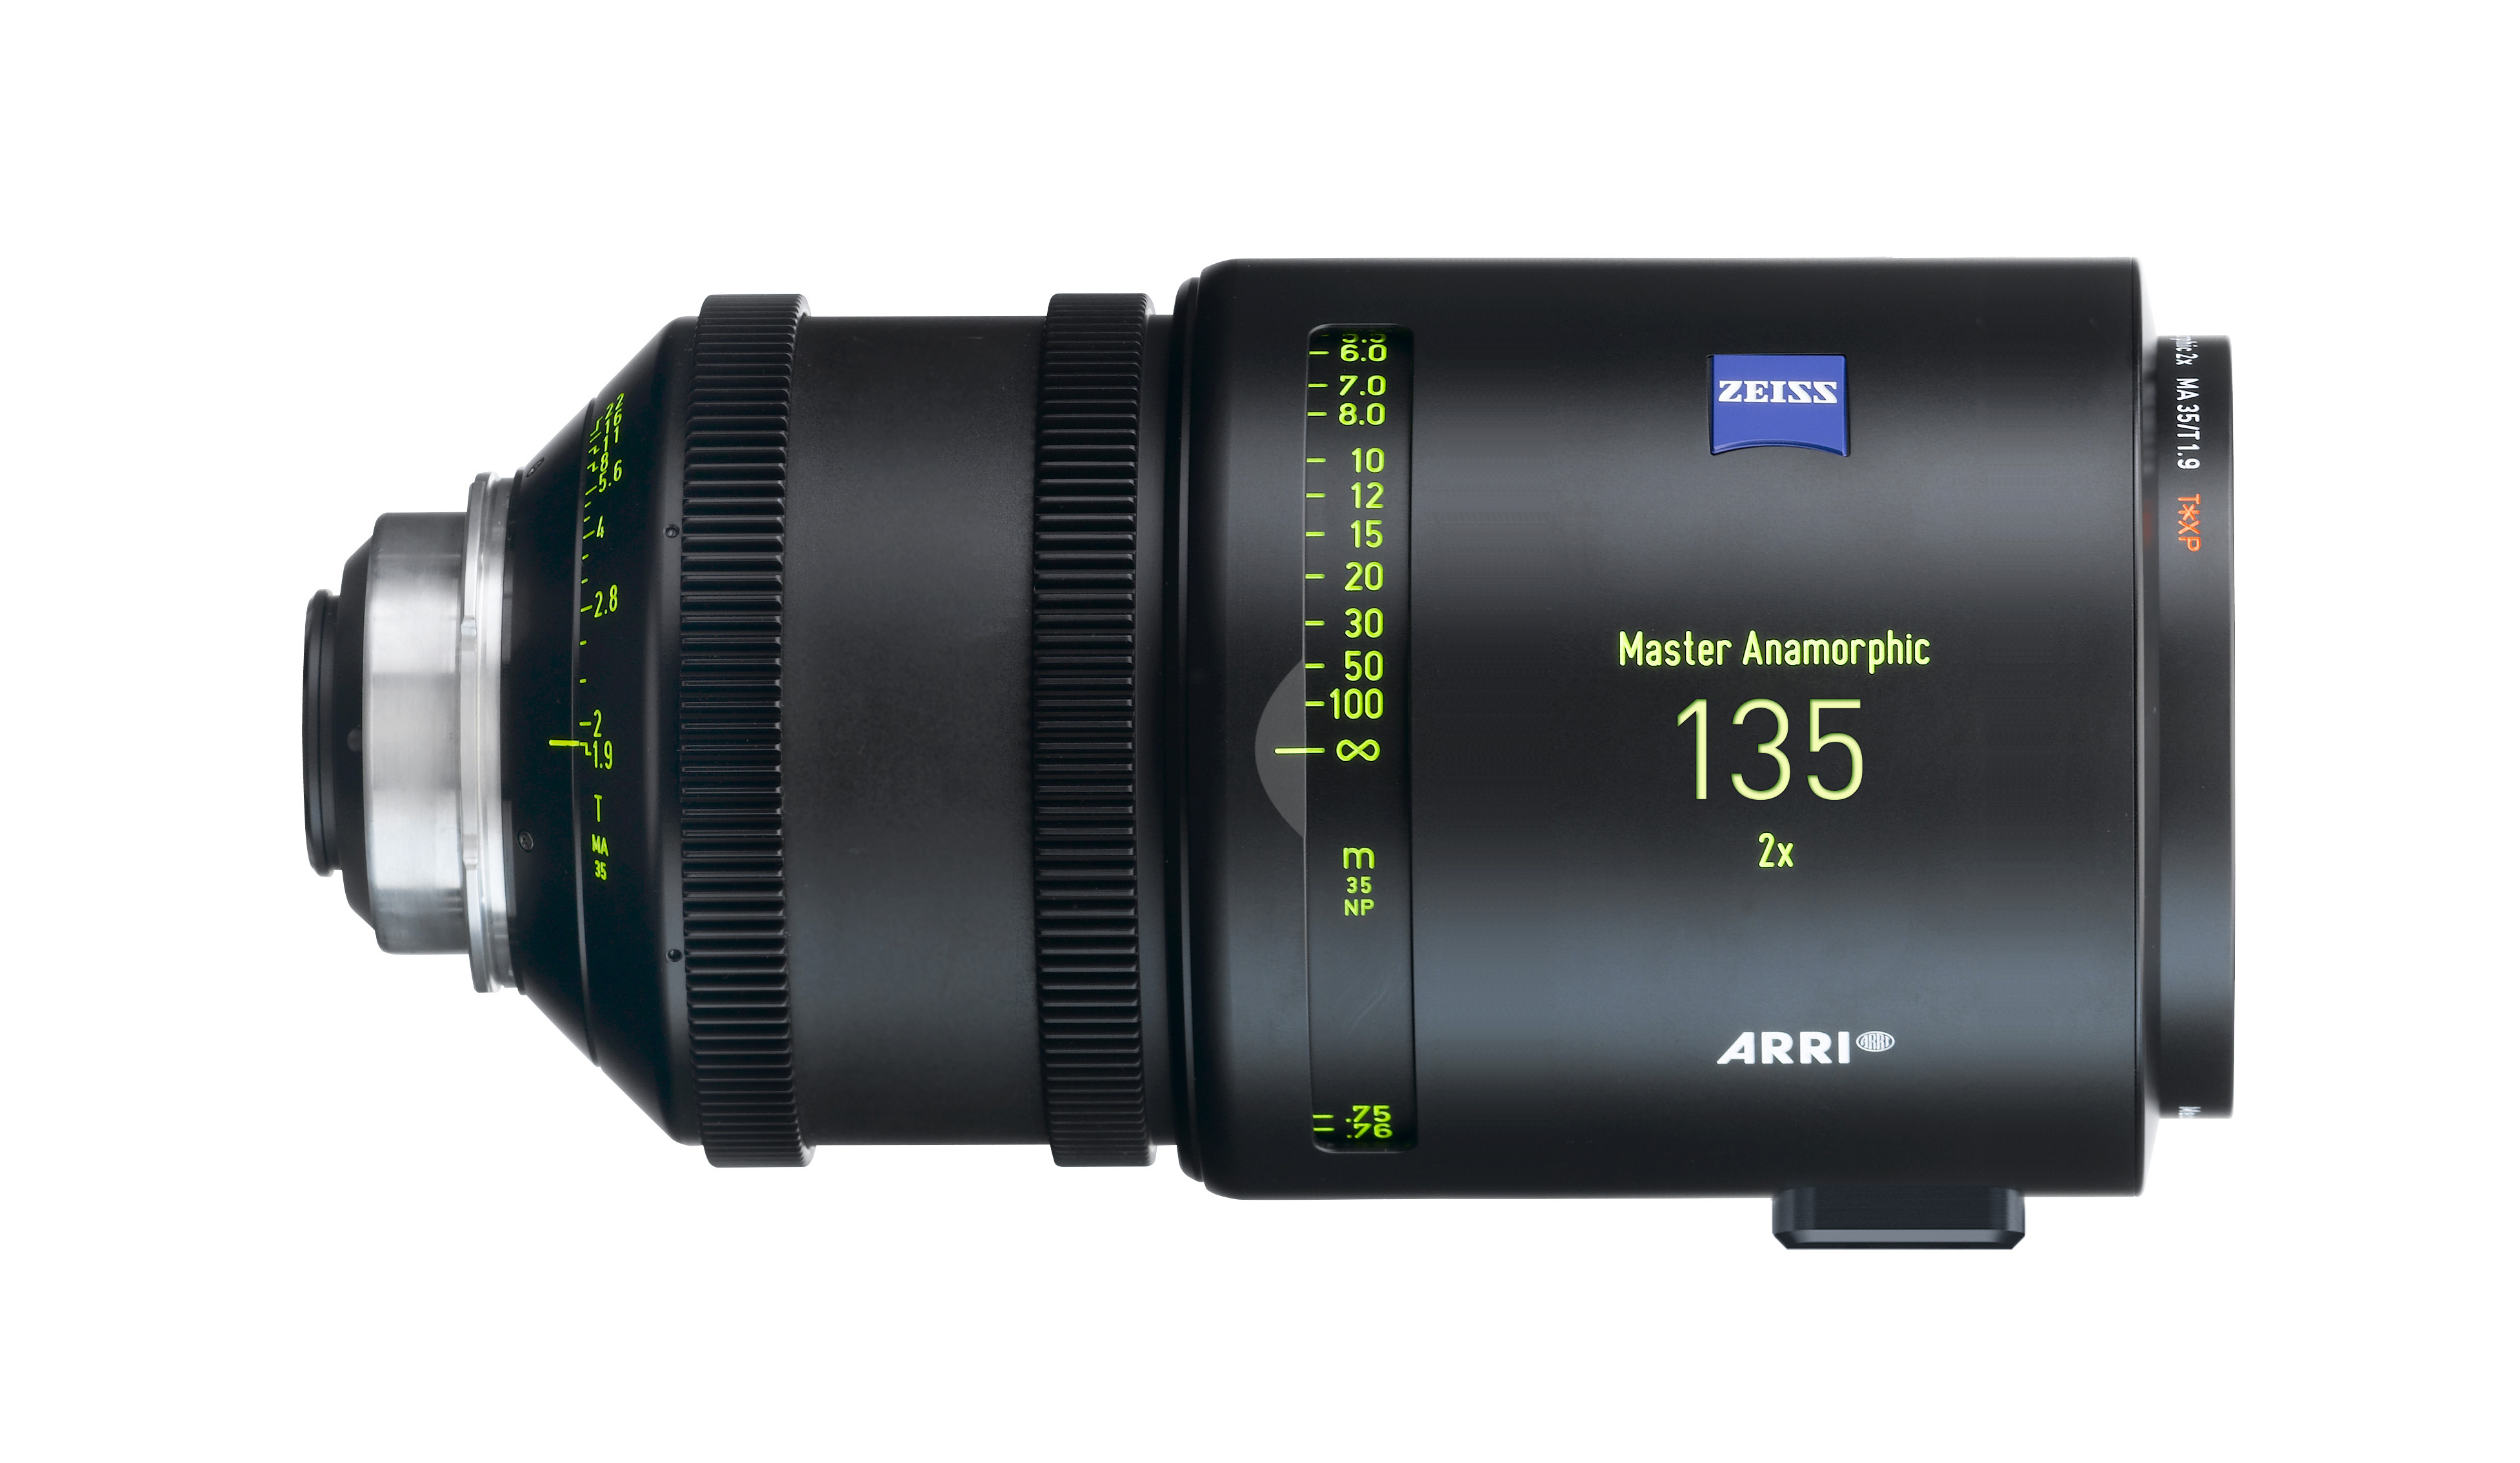 MA 135/T1.9 Completes Master Anamorphic Family from ZEISS and ARRI 4